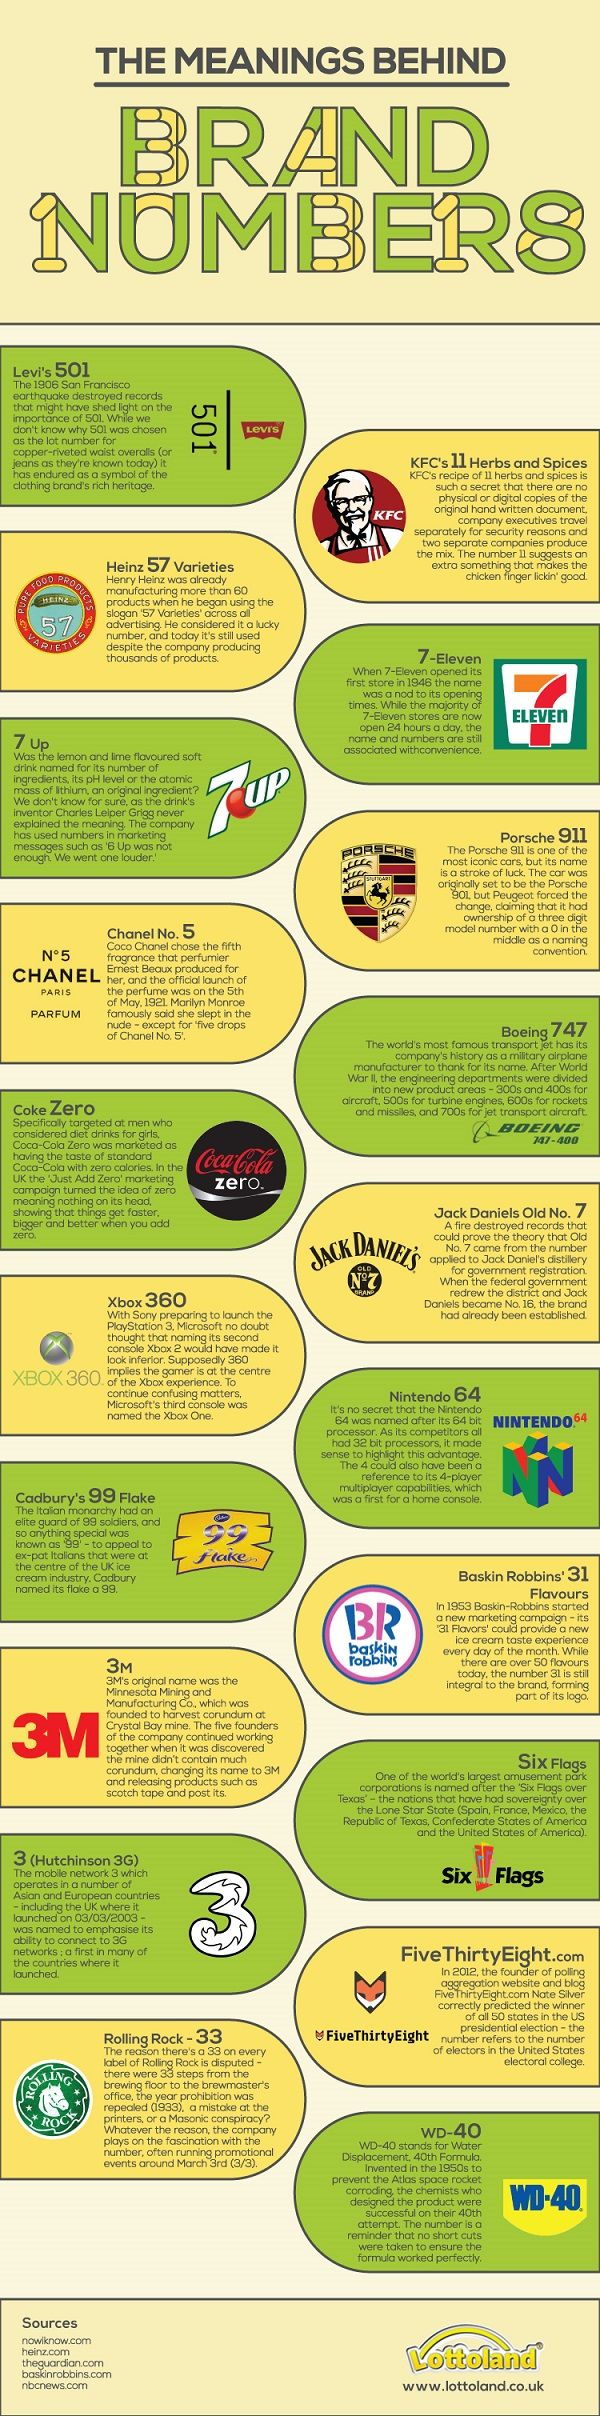 The meaning behind brand numbers